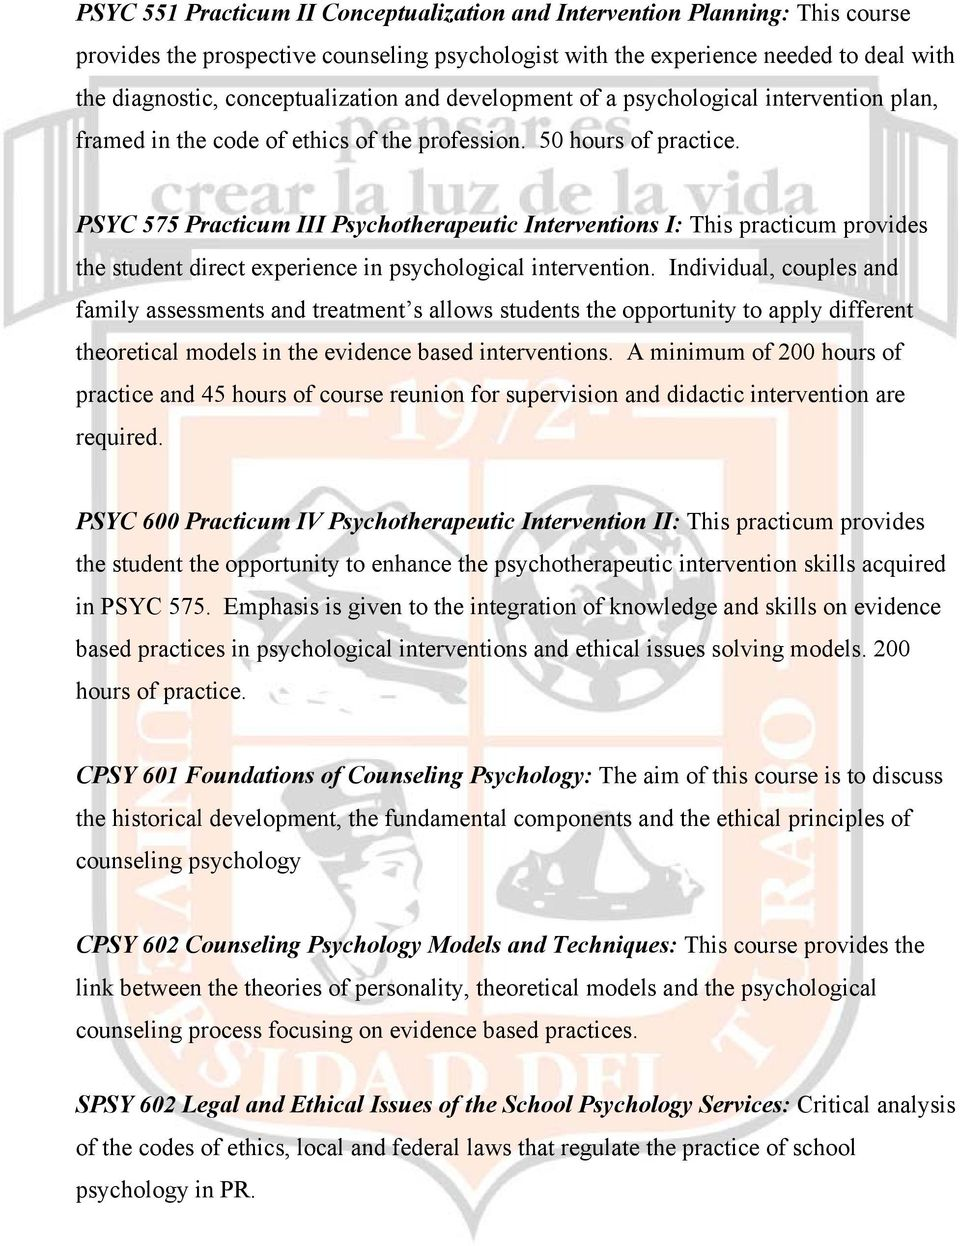 PSYC 575 Practicum III Psychotherapeutic Interventions I: This practicum provides the student direct experience in psychological intervention.